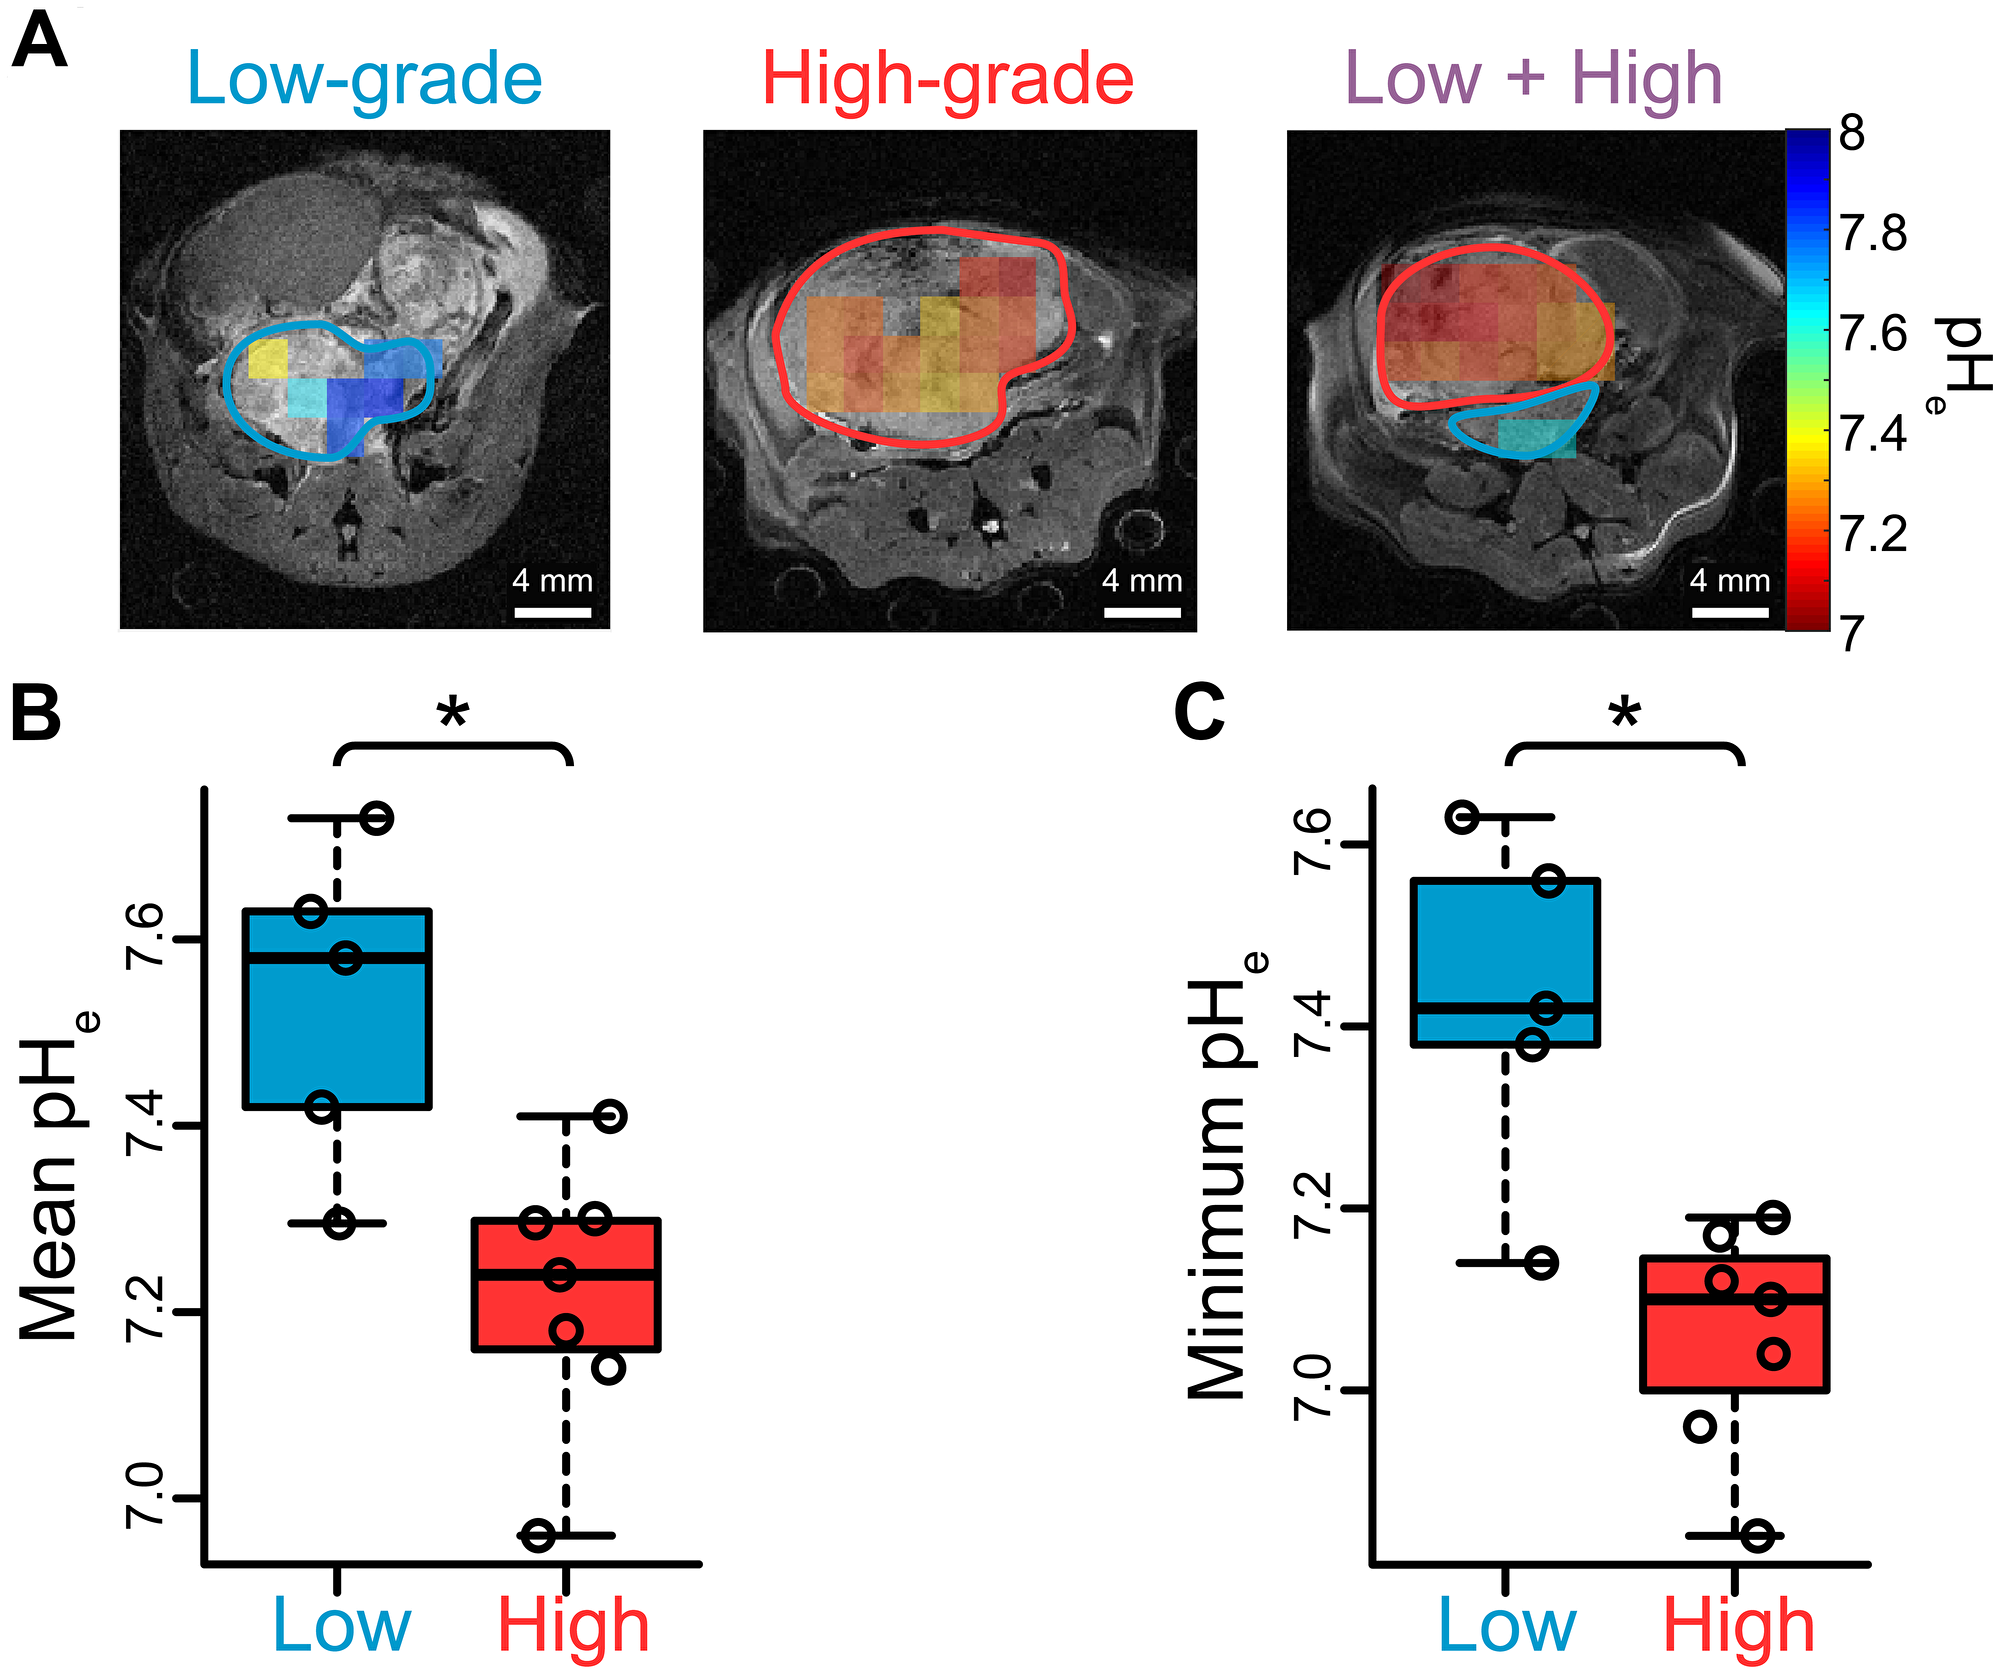 Extracellular pH measurements in TRAMP tumors via hyperpolarized [13C] bicarbonate imaging suggest extracellular acidification is associated with high-grade disease.